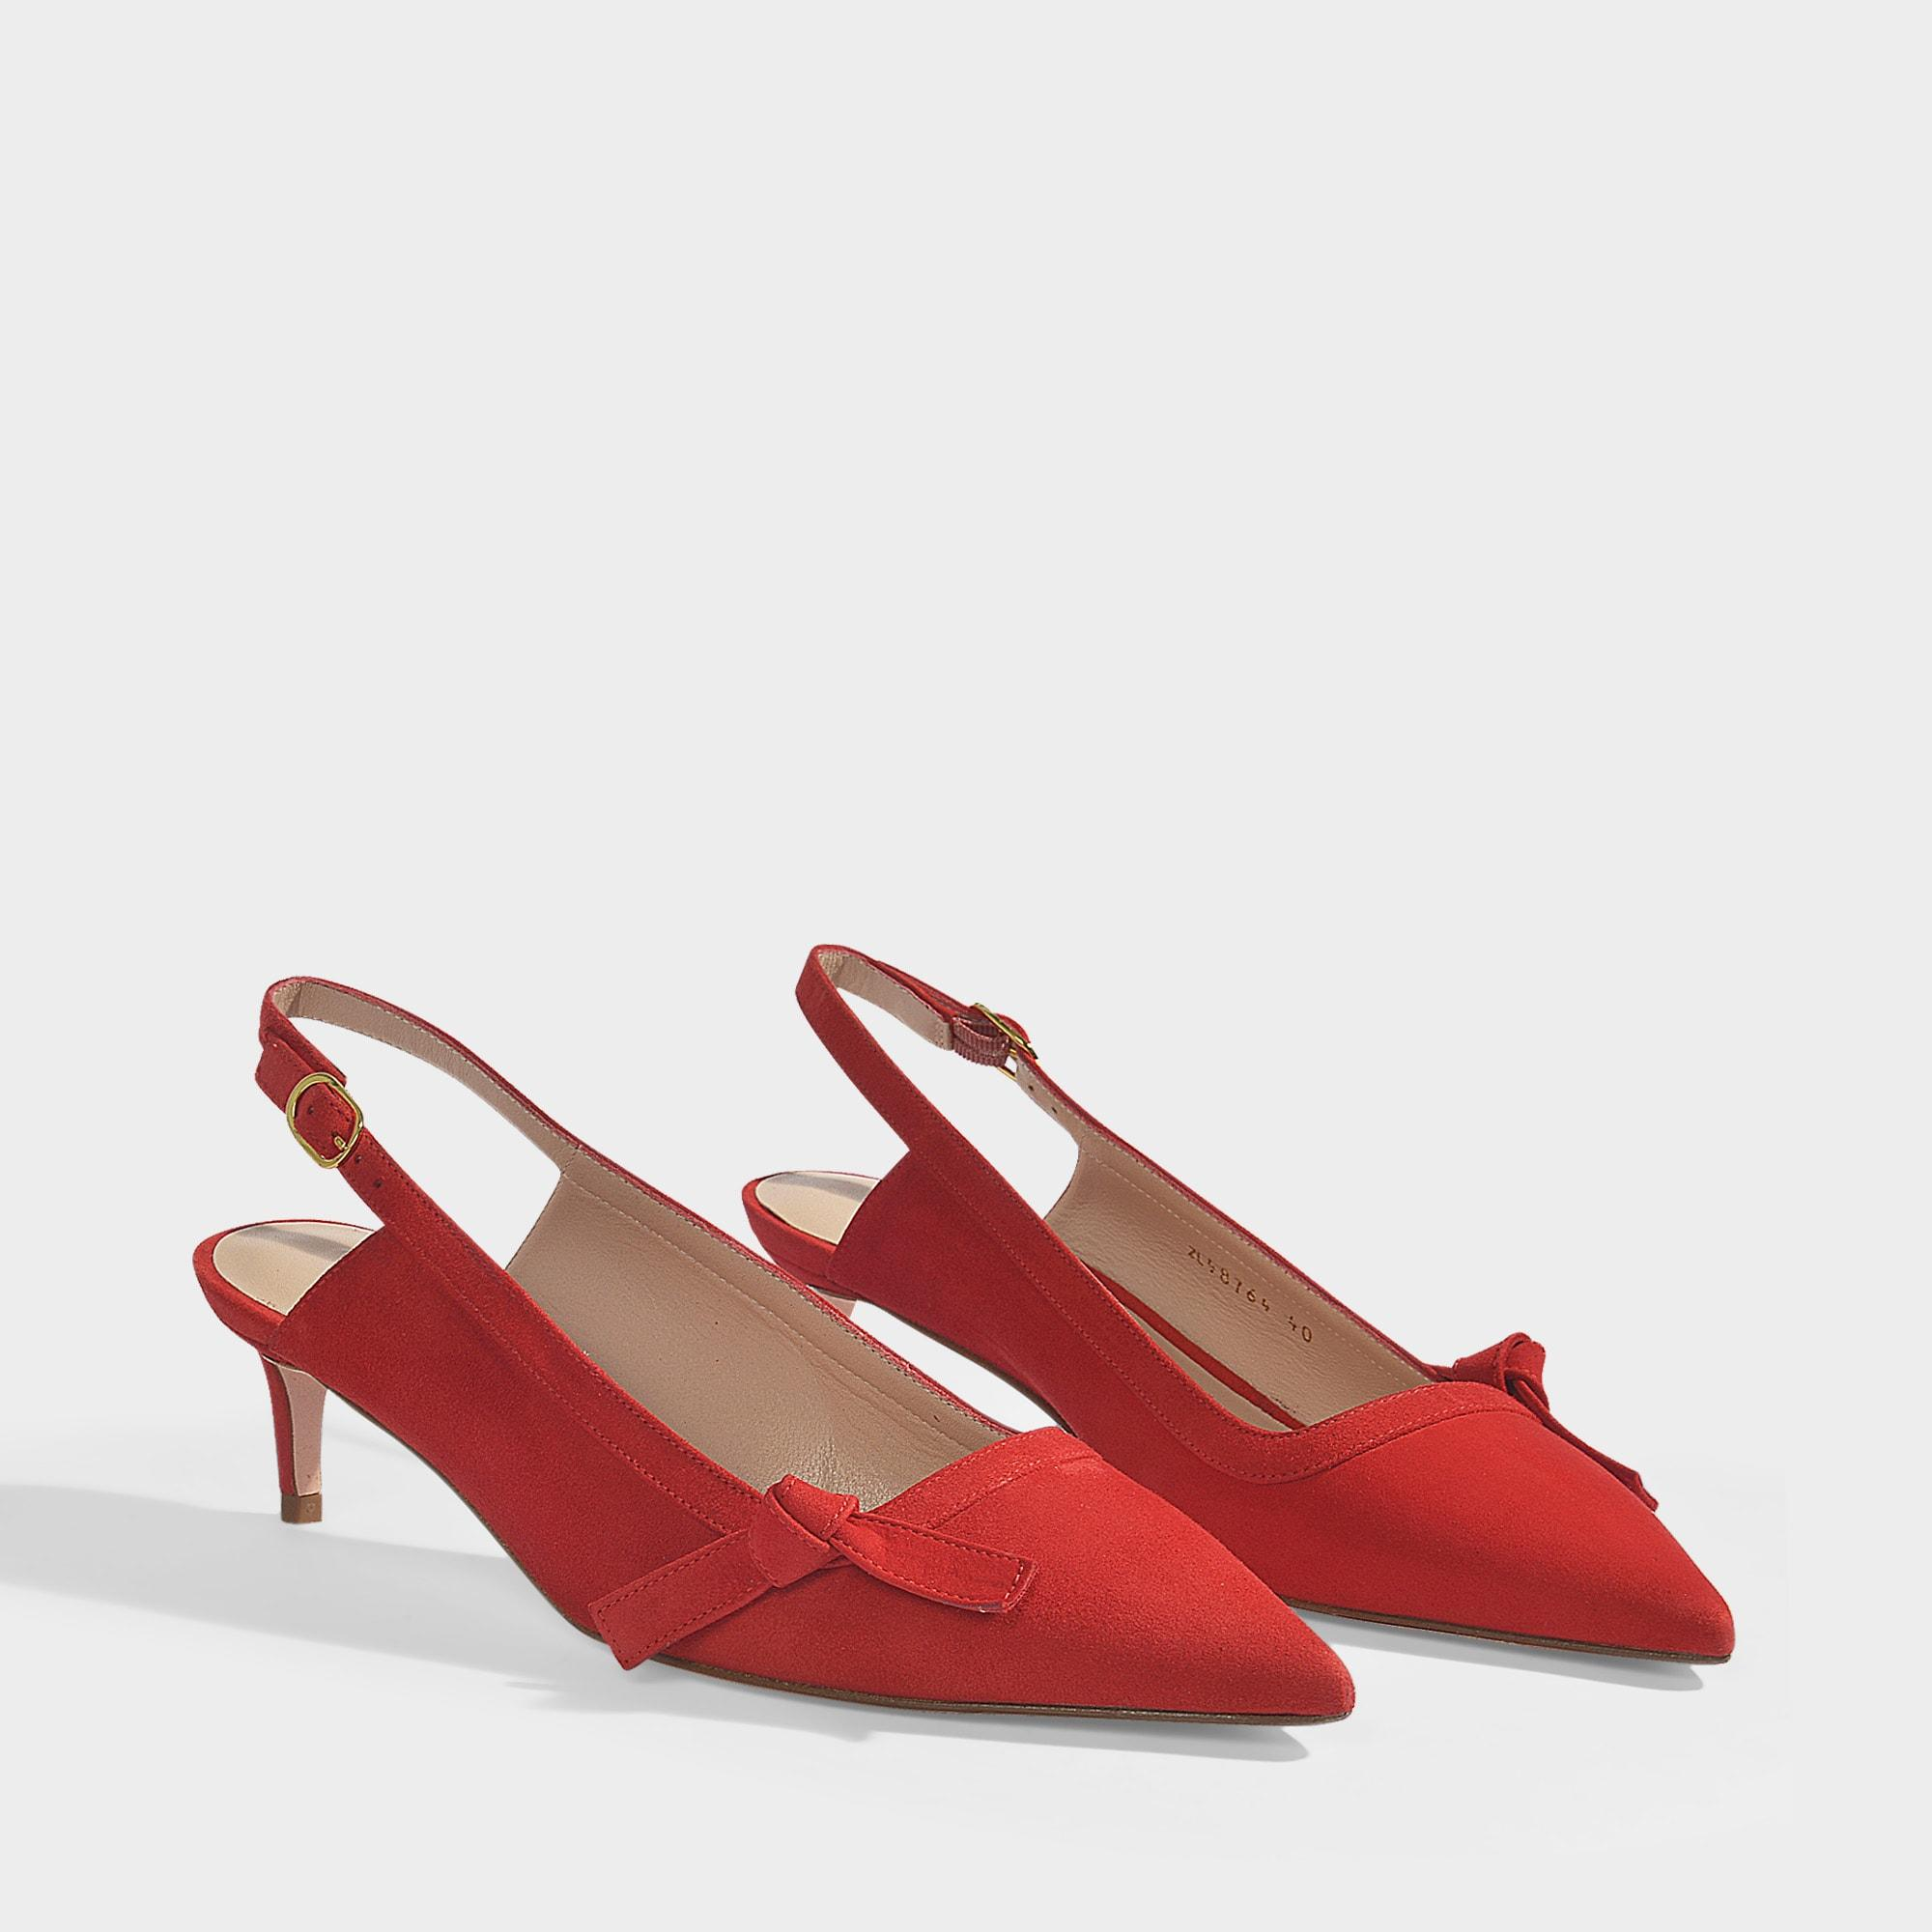 3e763e558a14 Stuart Weitzman - Hayworth Slingbacks In Follow Me Red Suede - Lyst. View  fullscreen